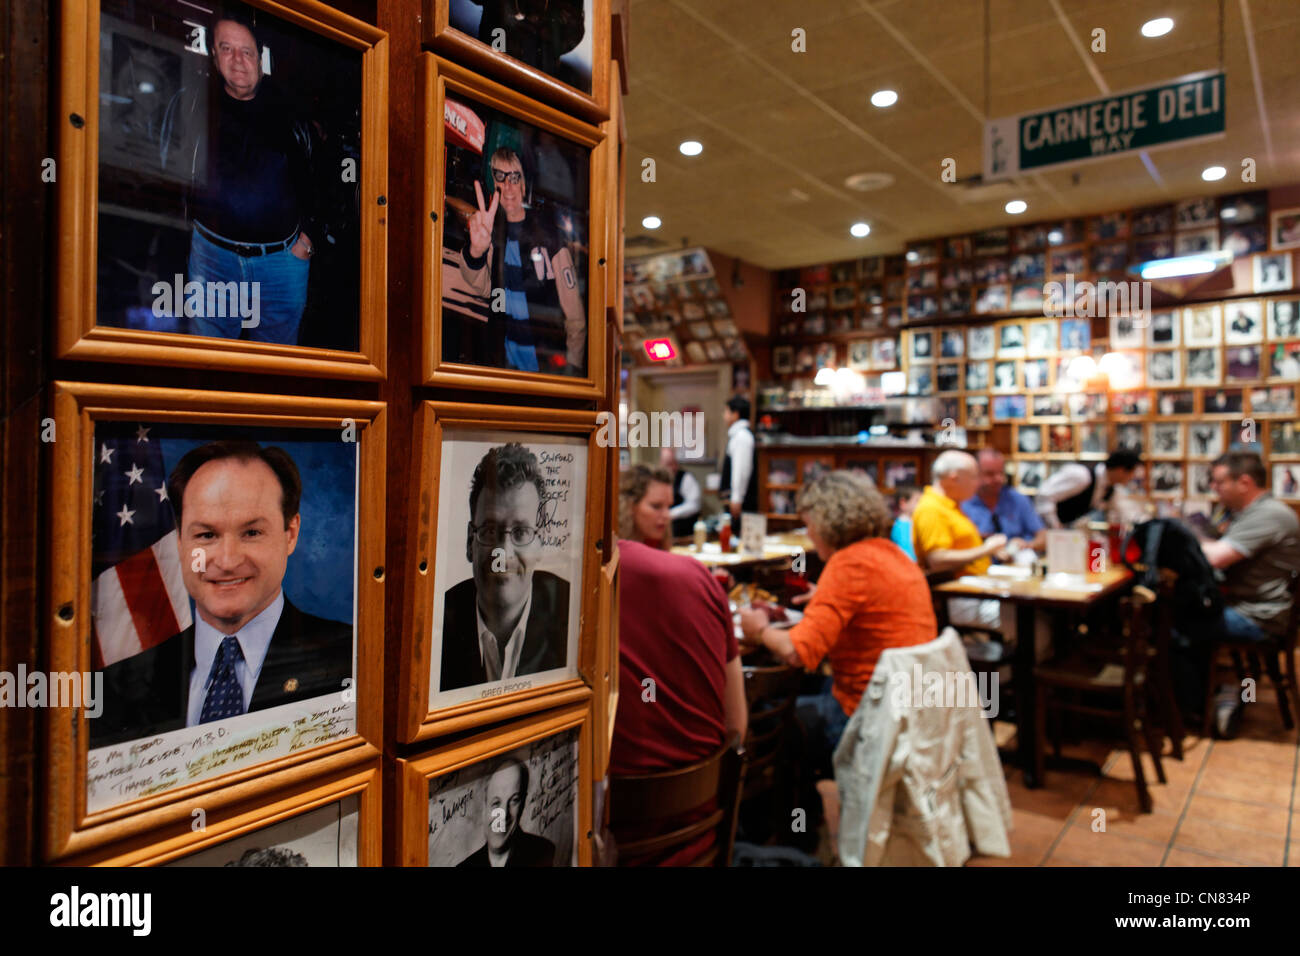 United States, New York City, Manhattan, Midtown, photos dedicated by personalities in a room of the restaurant - Stock Image